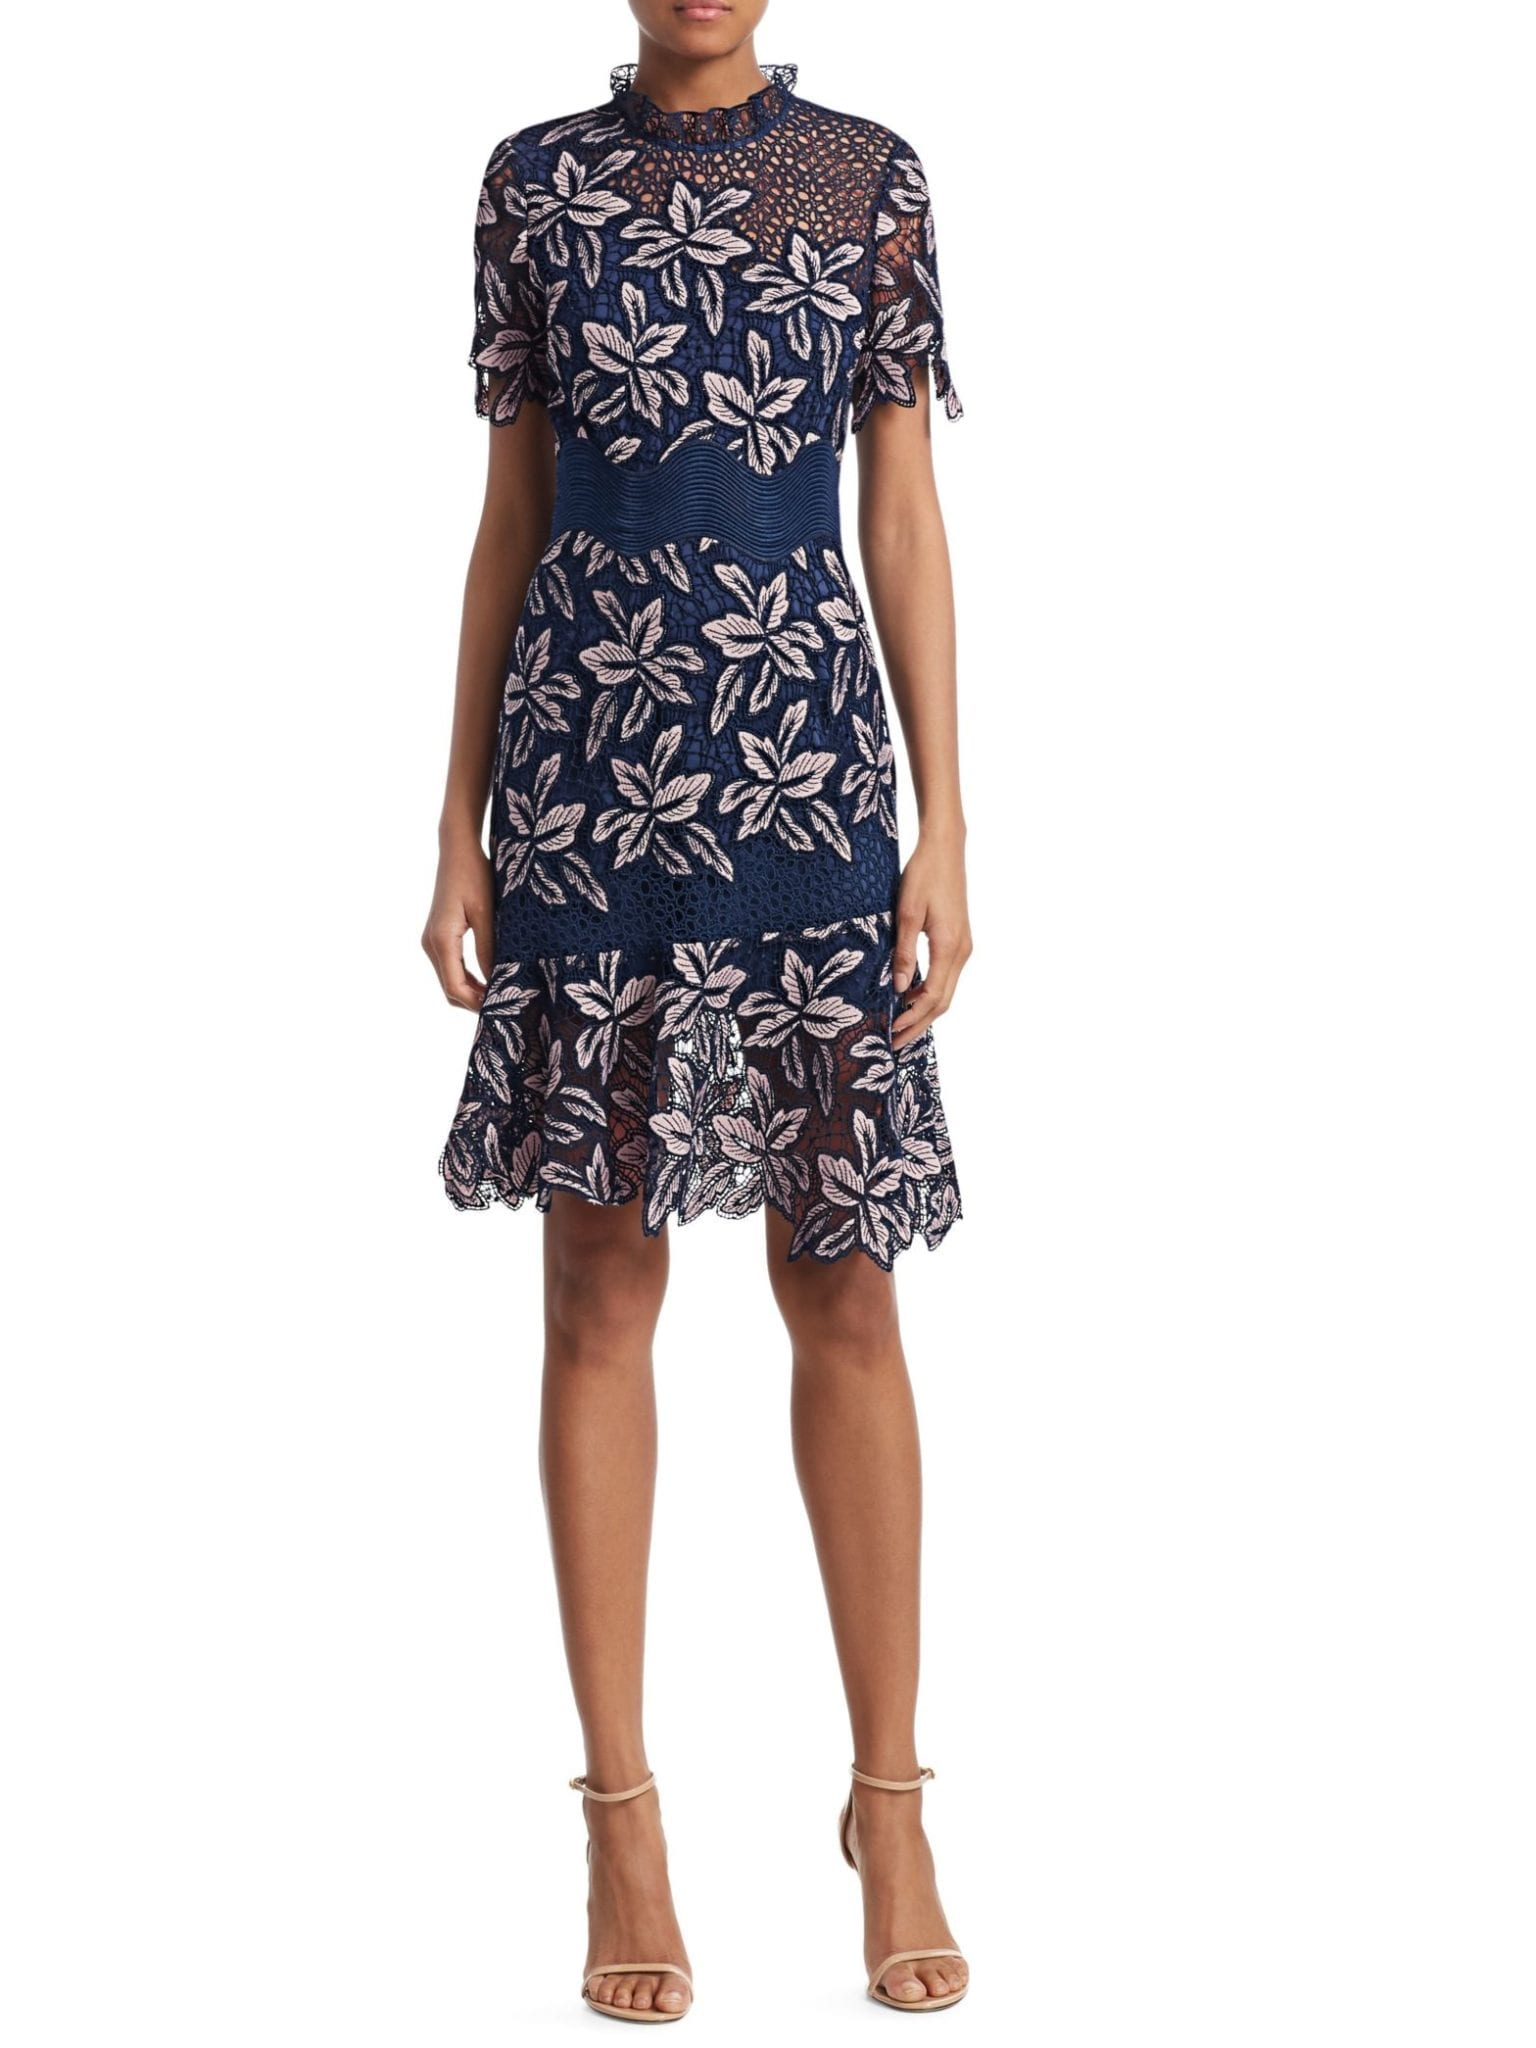 SEA Mosaic Lace High-Neck Sheath Navy Dress